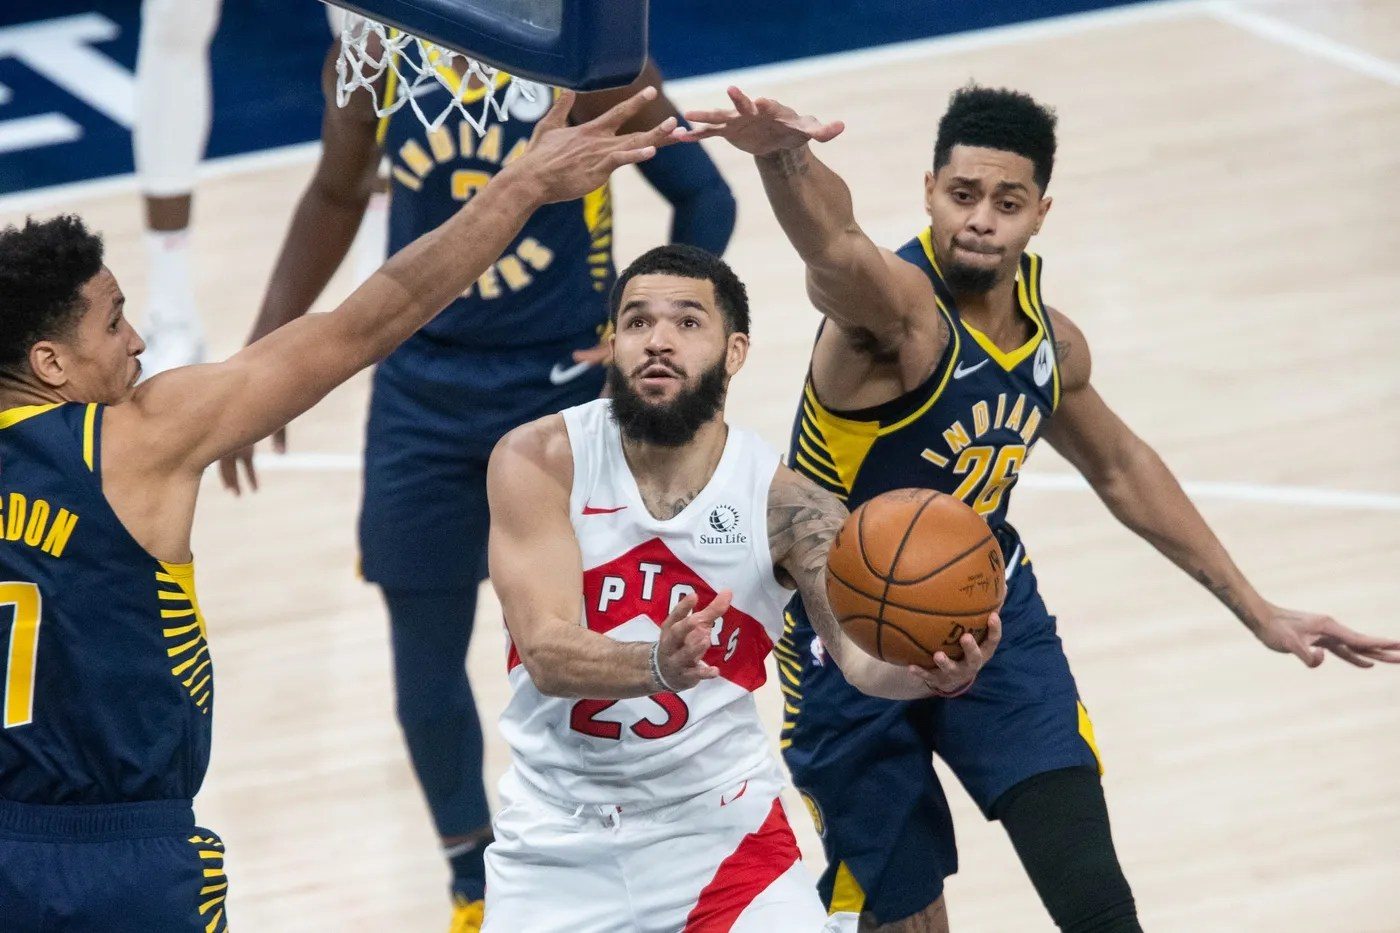 Jan 25, 2021; Indianapolis, Indiana, USA; Toronto Raptors guard Fred VanVleet (23) shoots the ball in between Indiana Pacers guard Malcolm Brogdon (7) and guard Jeremy Lamb (26) in the fourth quarter at Bankers Life Fieldhouse.